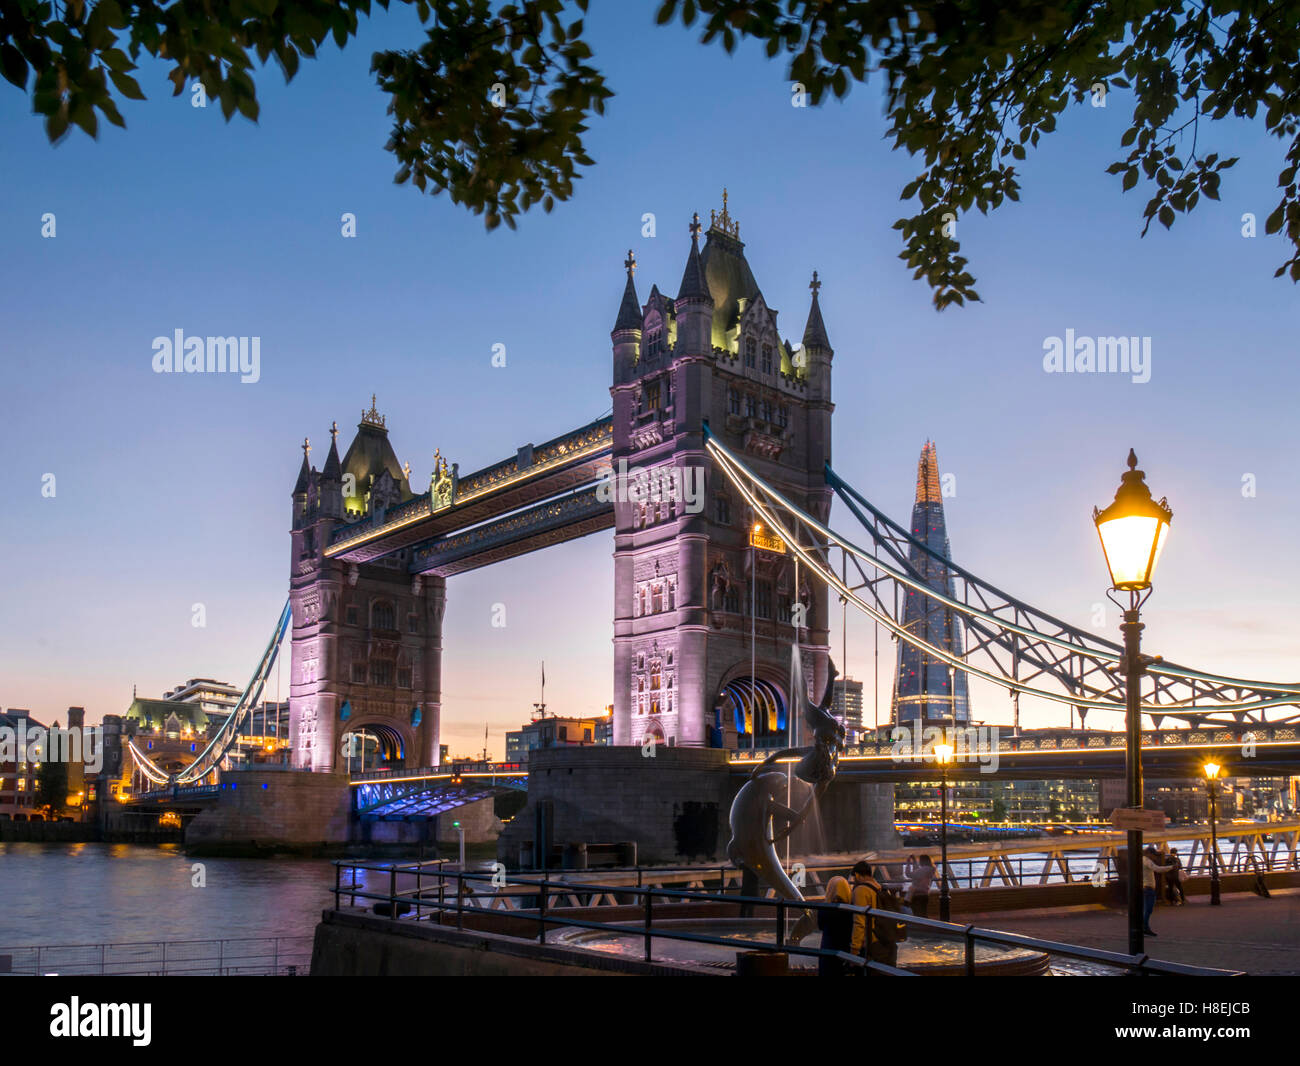 Tower Bridge and Shard at dusk, London, England, United Kingdom, Europe - Stock Image